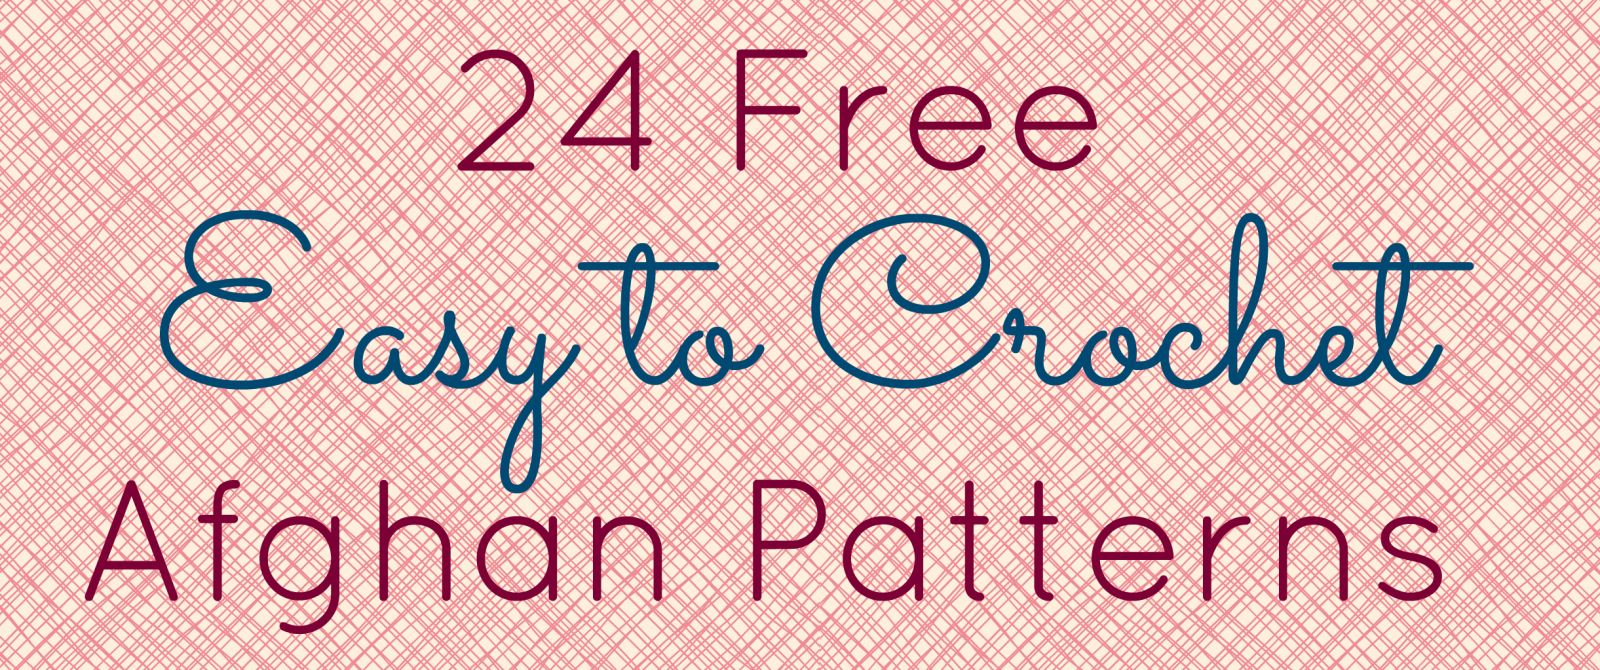 All Free Crochet Afghan Patterns : Pin Free Easy To Crochet Afghan Patterns 05 Jpg on Pinterest